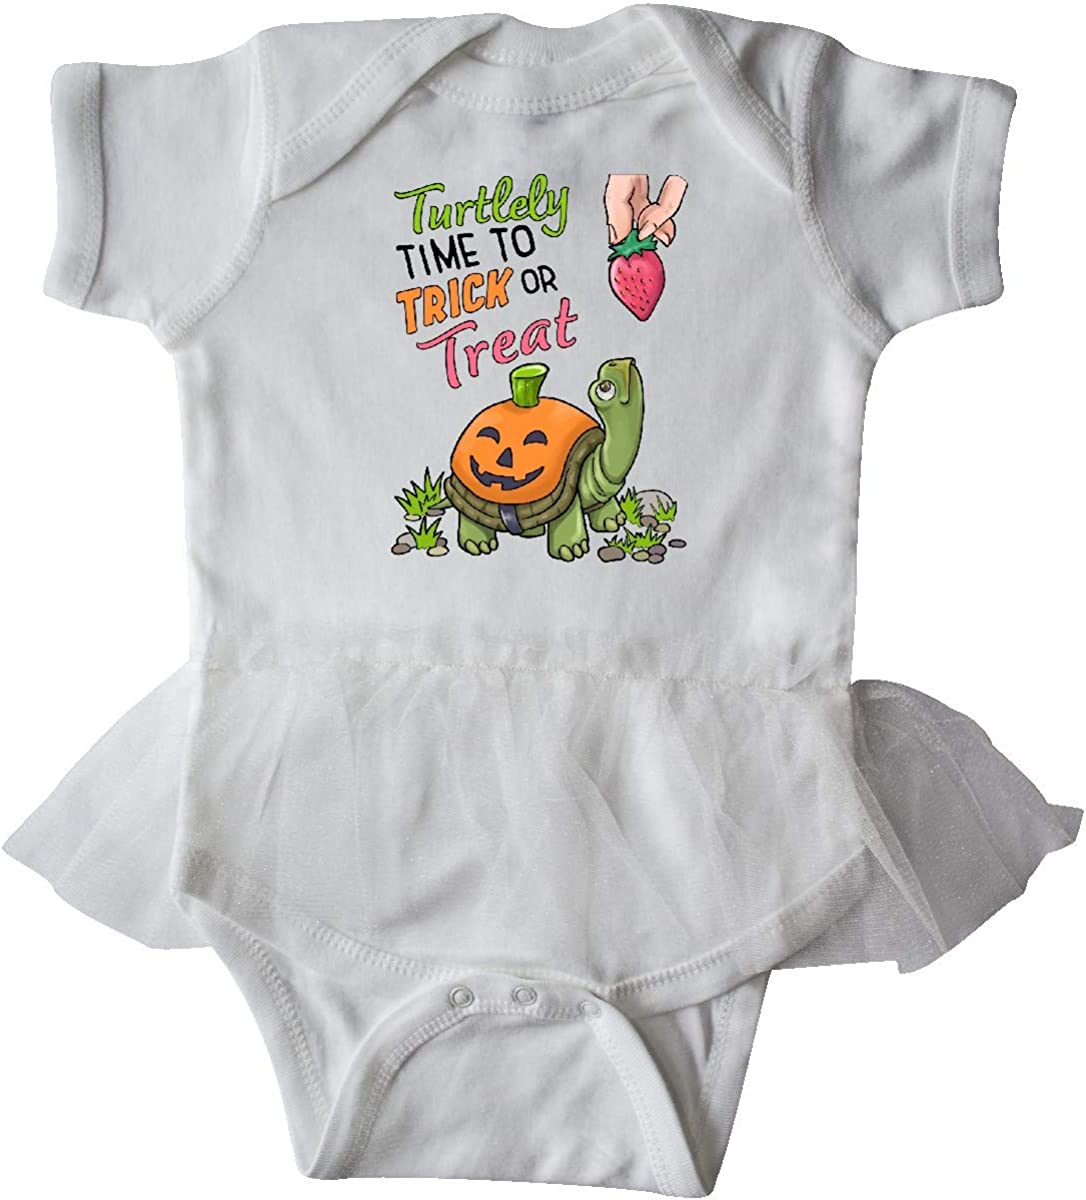 inktastic Turtlely Time to Trick or Treat with Cute Turtle Infant Tutu Bodysuit